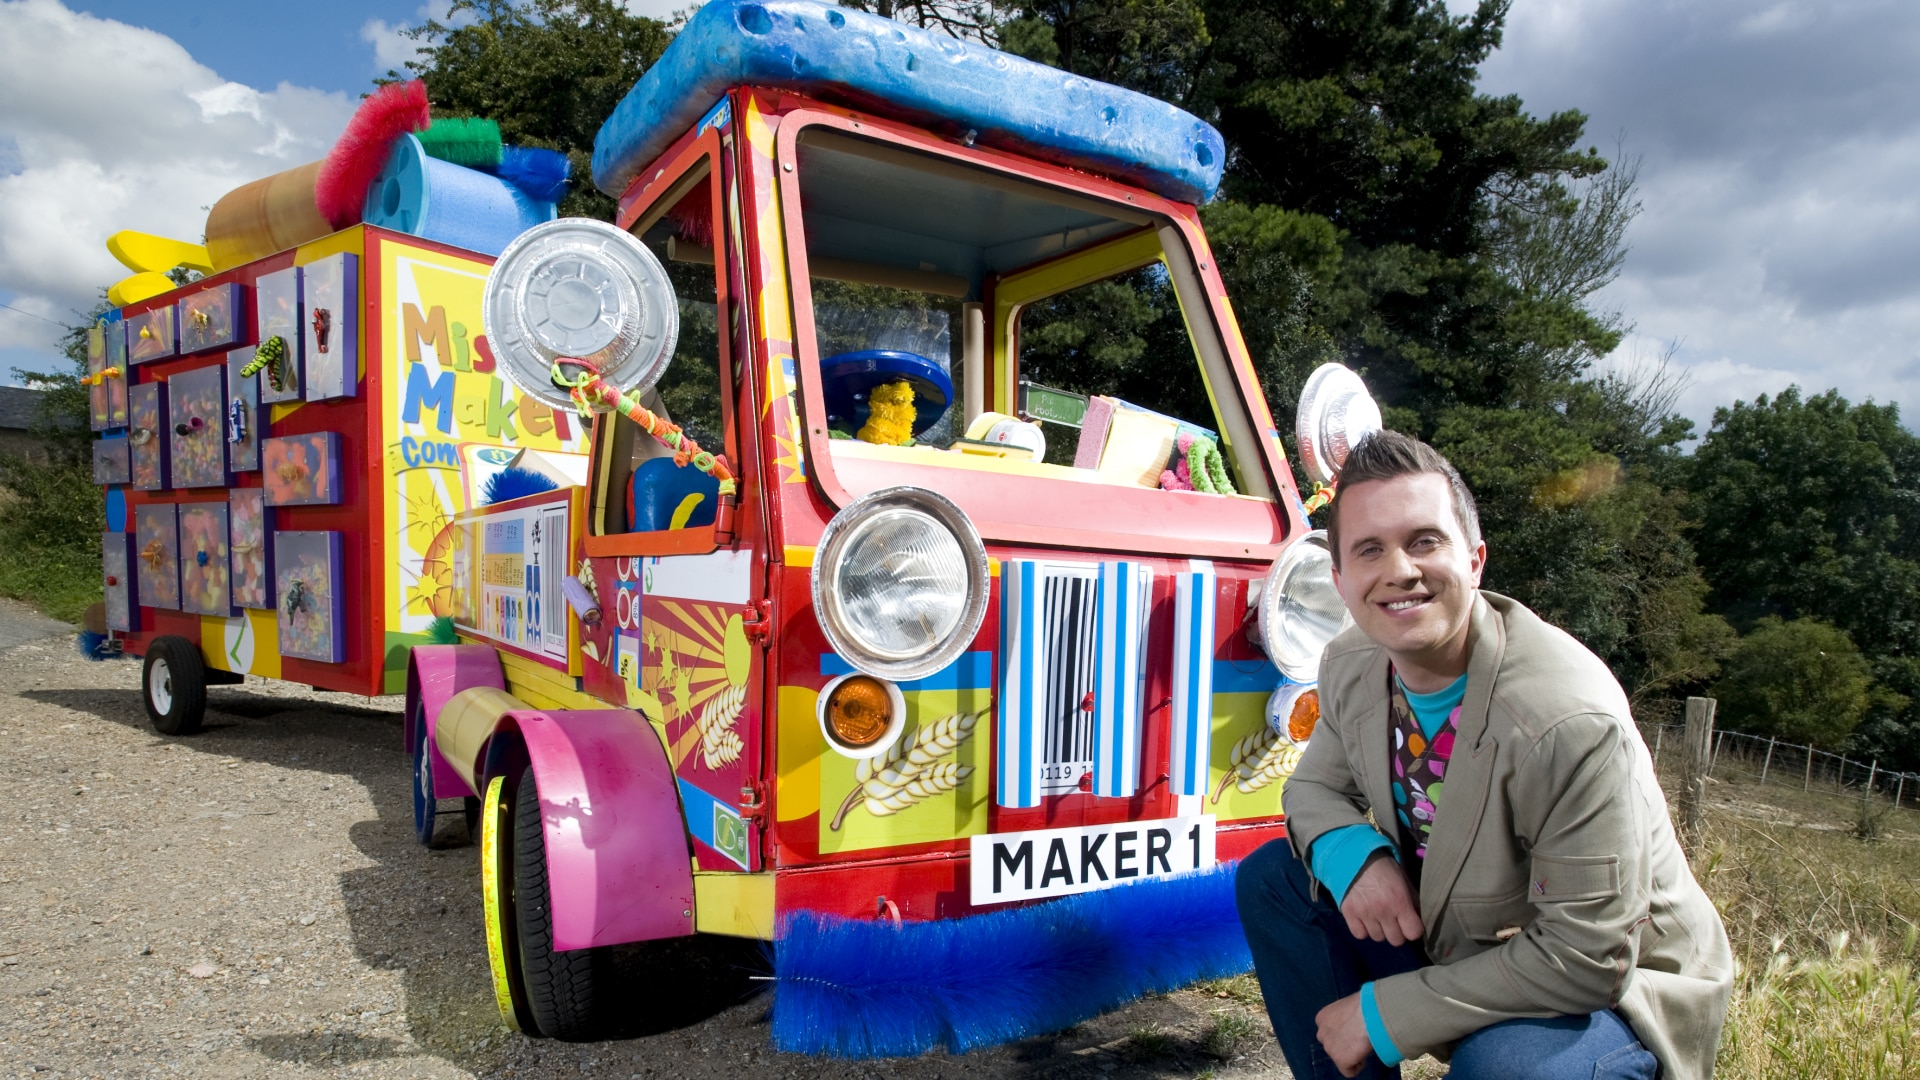 Mister Maker Comes To Town 4